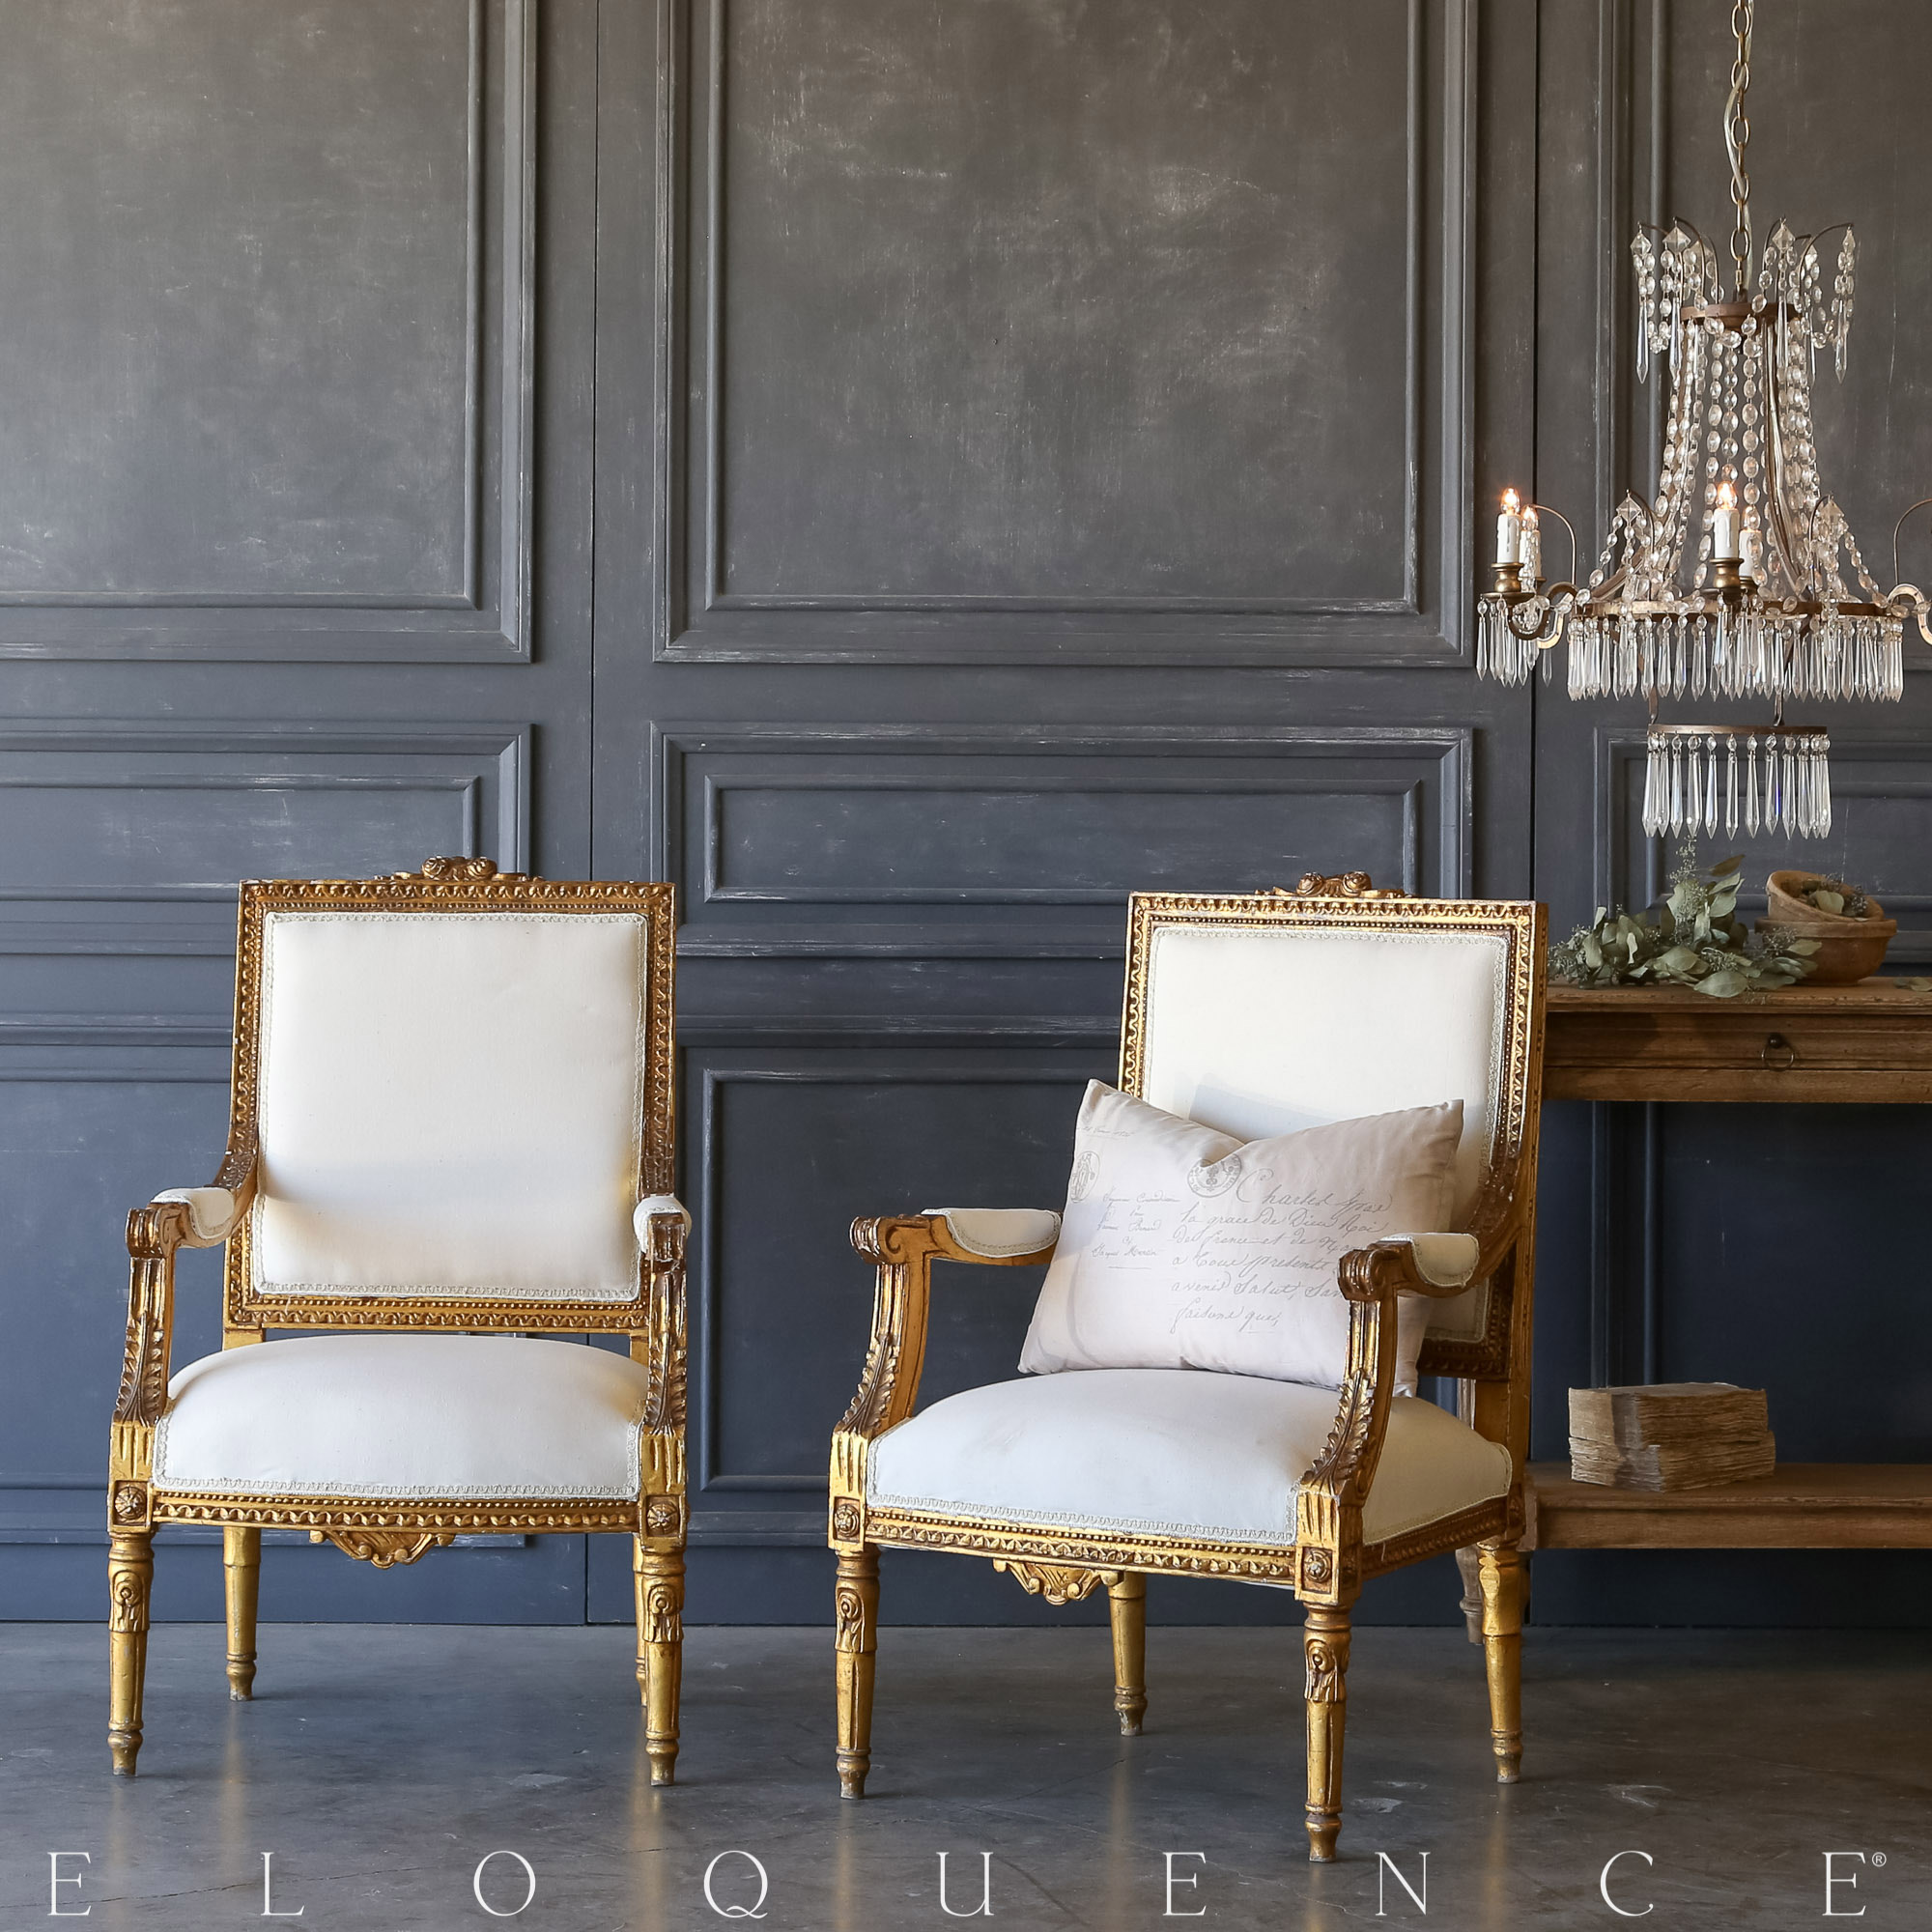 Eloquence® Pair of Vintage Bright Gold Armchairs: 1940